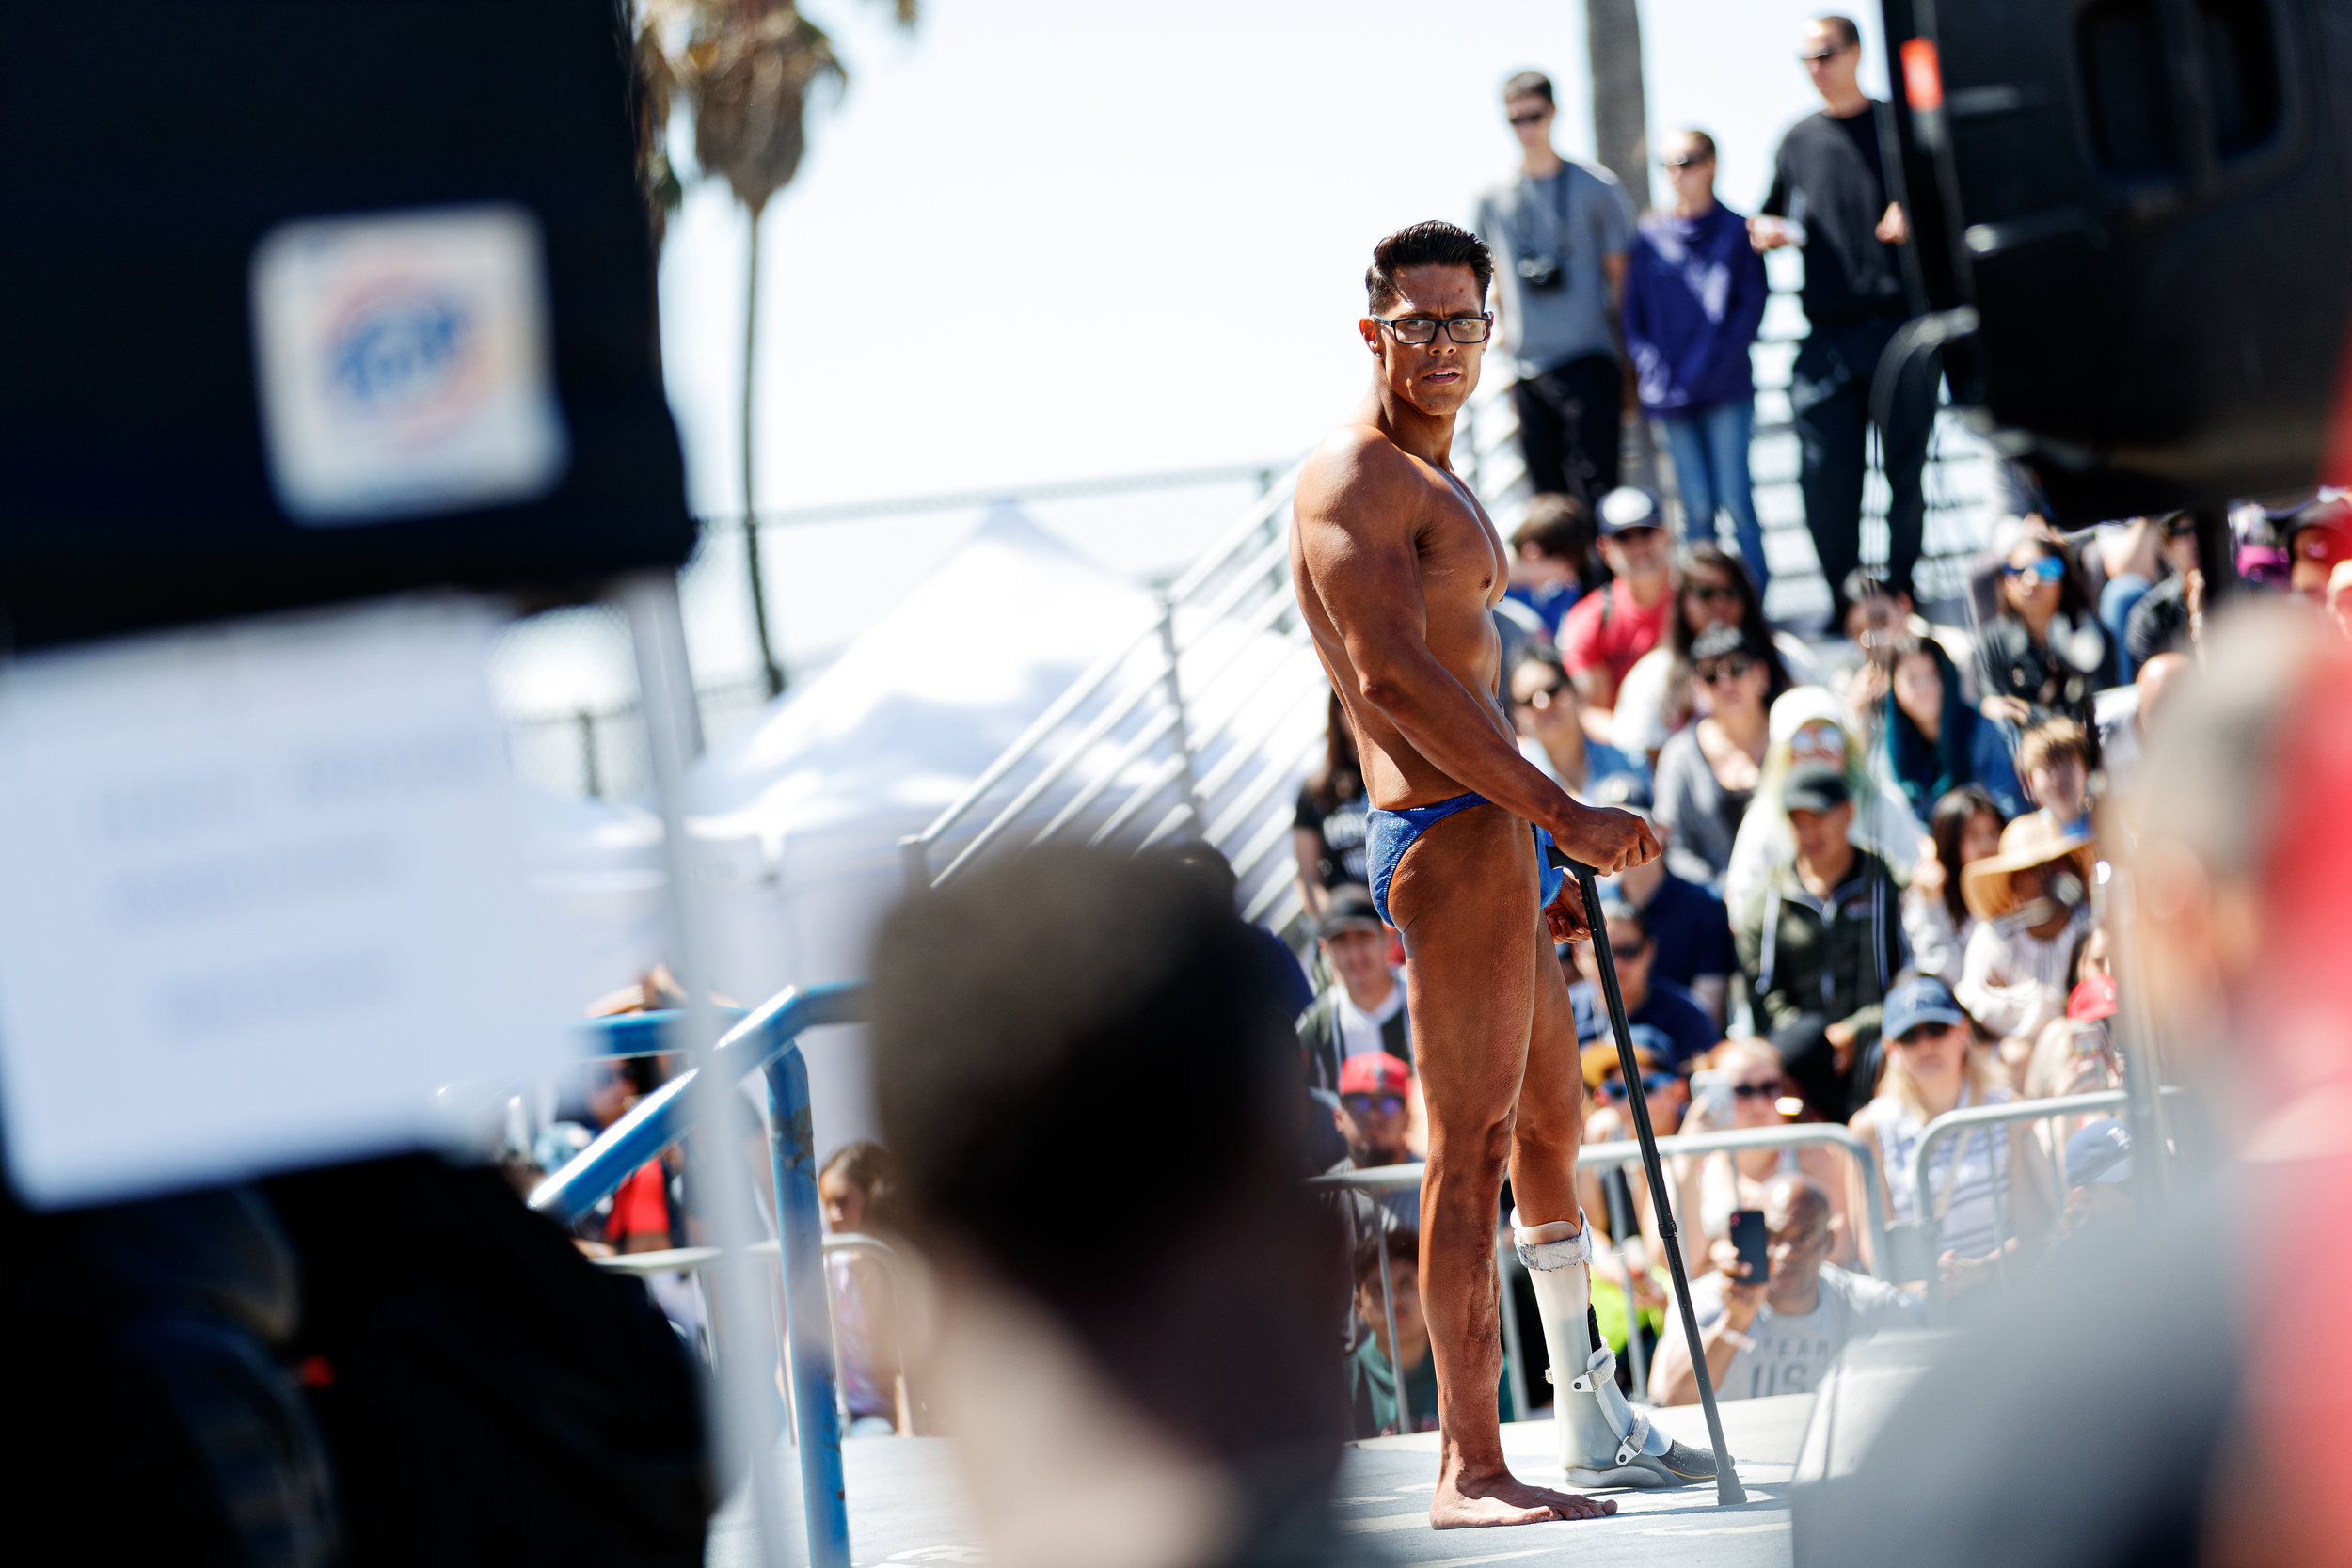 Muscle Beach International Classic at Muscle Beach on May 27, 2019 in Venice Beach, Calif.. (Photo by Bryan Bennett)